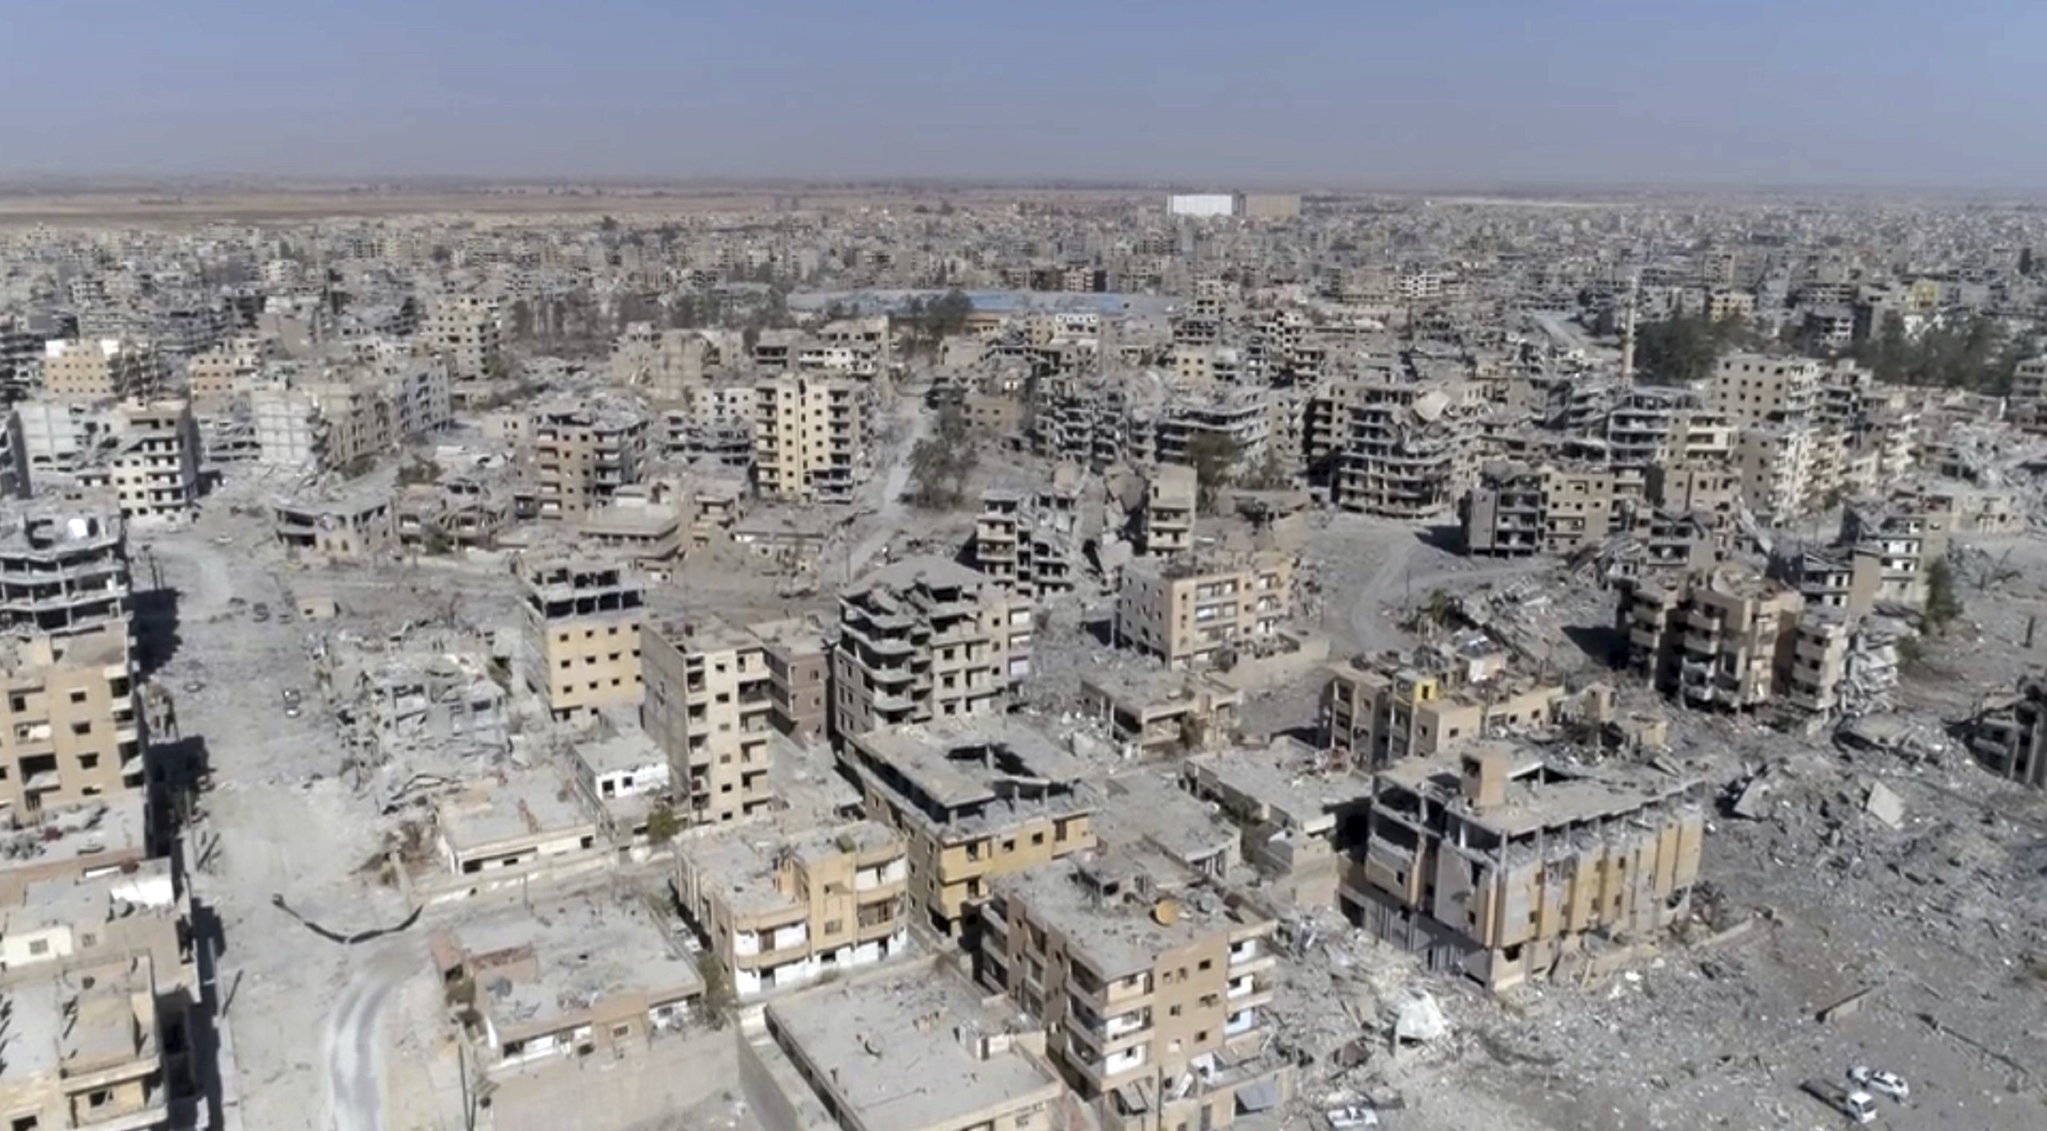 This Thursday, Oct. 19, 2017 frame grab made from drone video shows damaged buildings in Raqqa, Syria. (AP Photo)